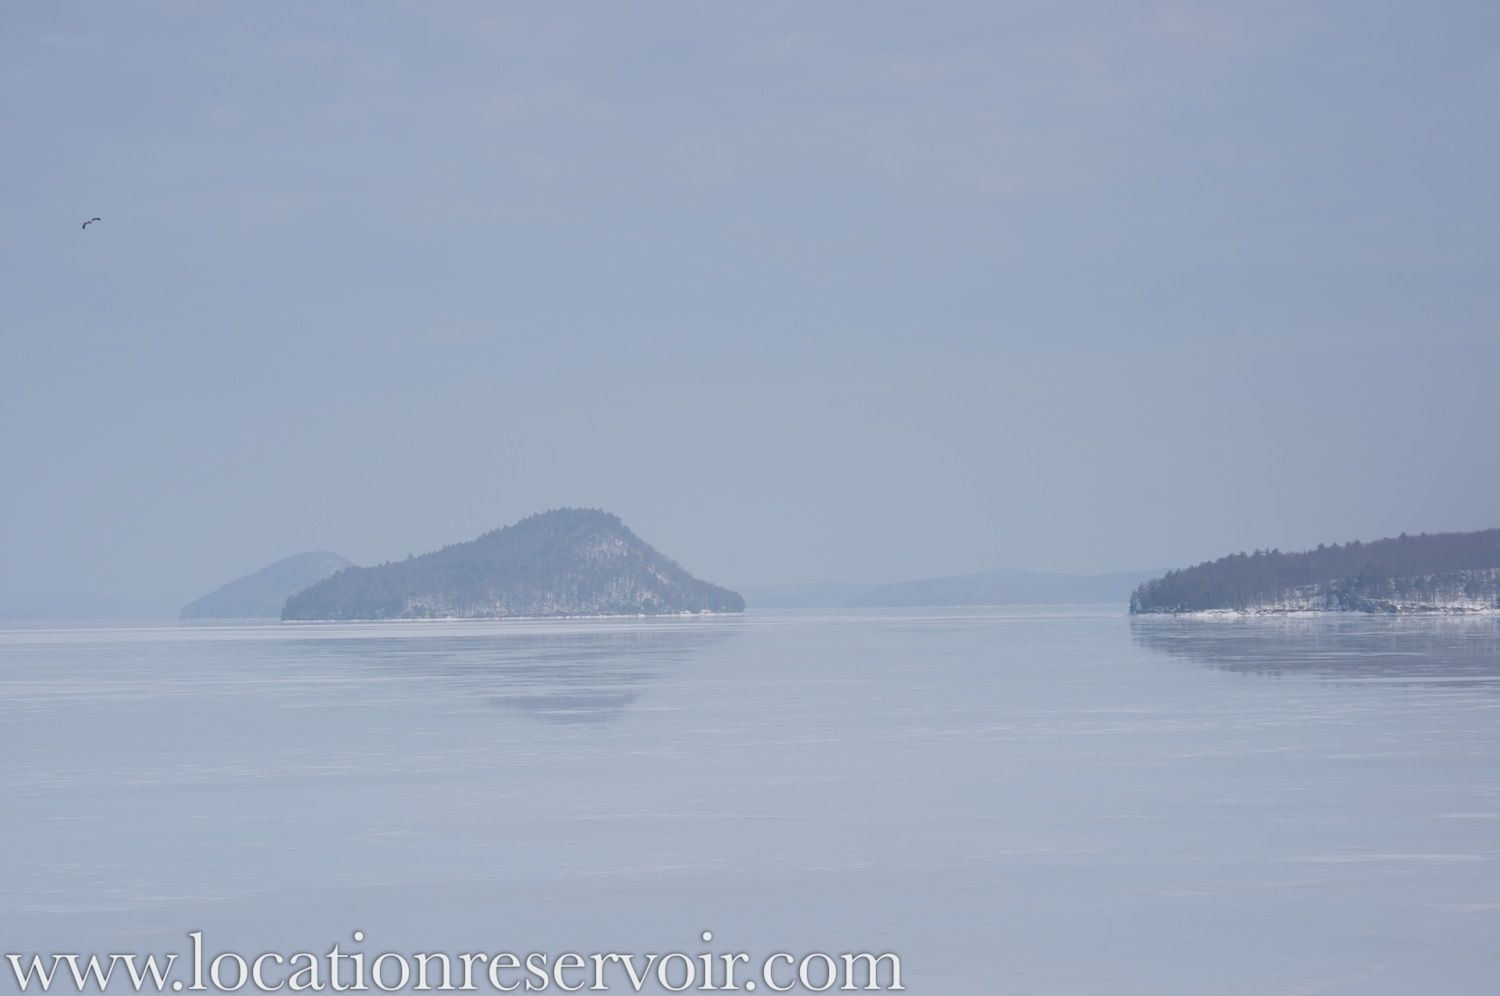 The Quabbin Reservoir looking mysterious in February, 2011.